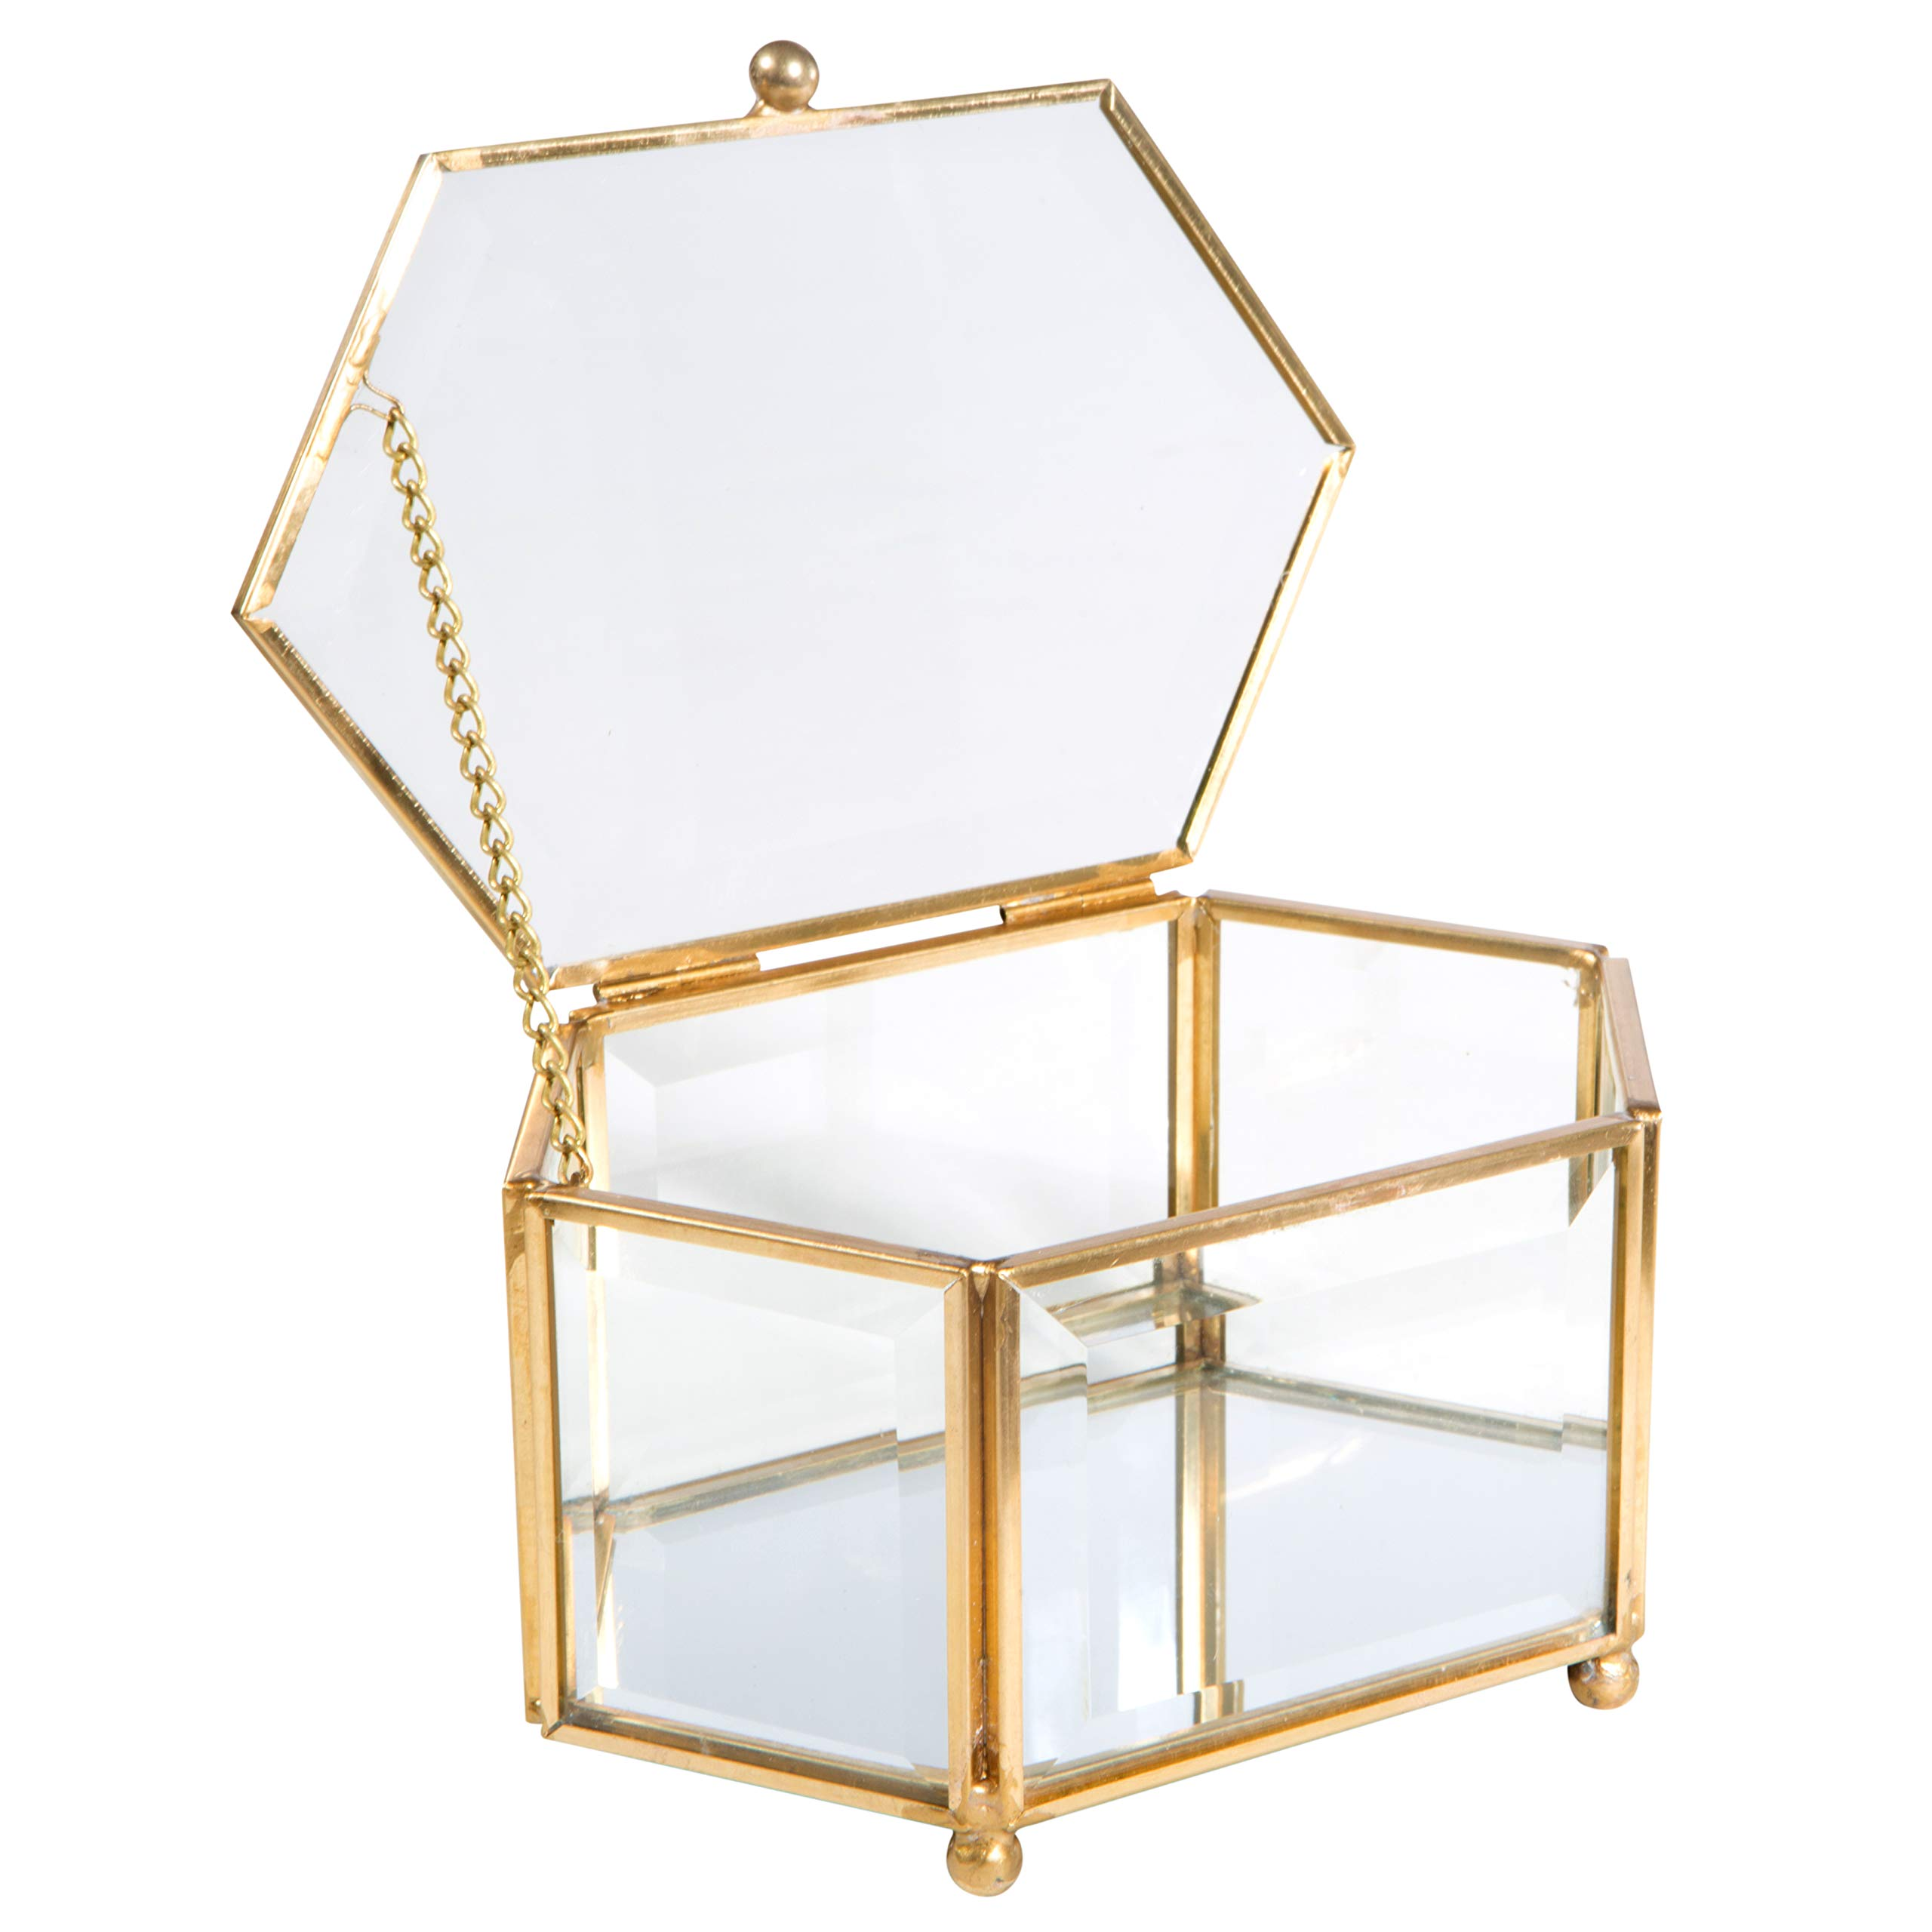 Home Details Vintage Mirrored Bottom Glass Keepsake Box Jewelry Organizer, Decorative Accent, Vanity, Wedding Bridal Party Gift, Candy Table Décor Jars & Boxes, Diamond Shape, Gold by Home Details